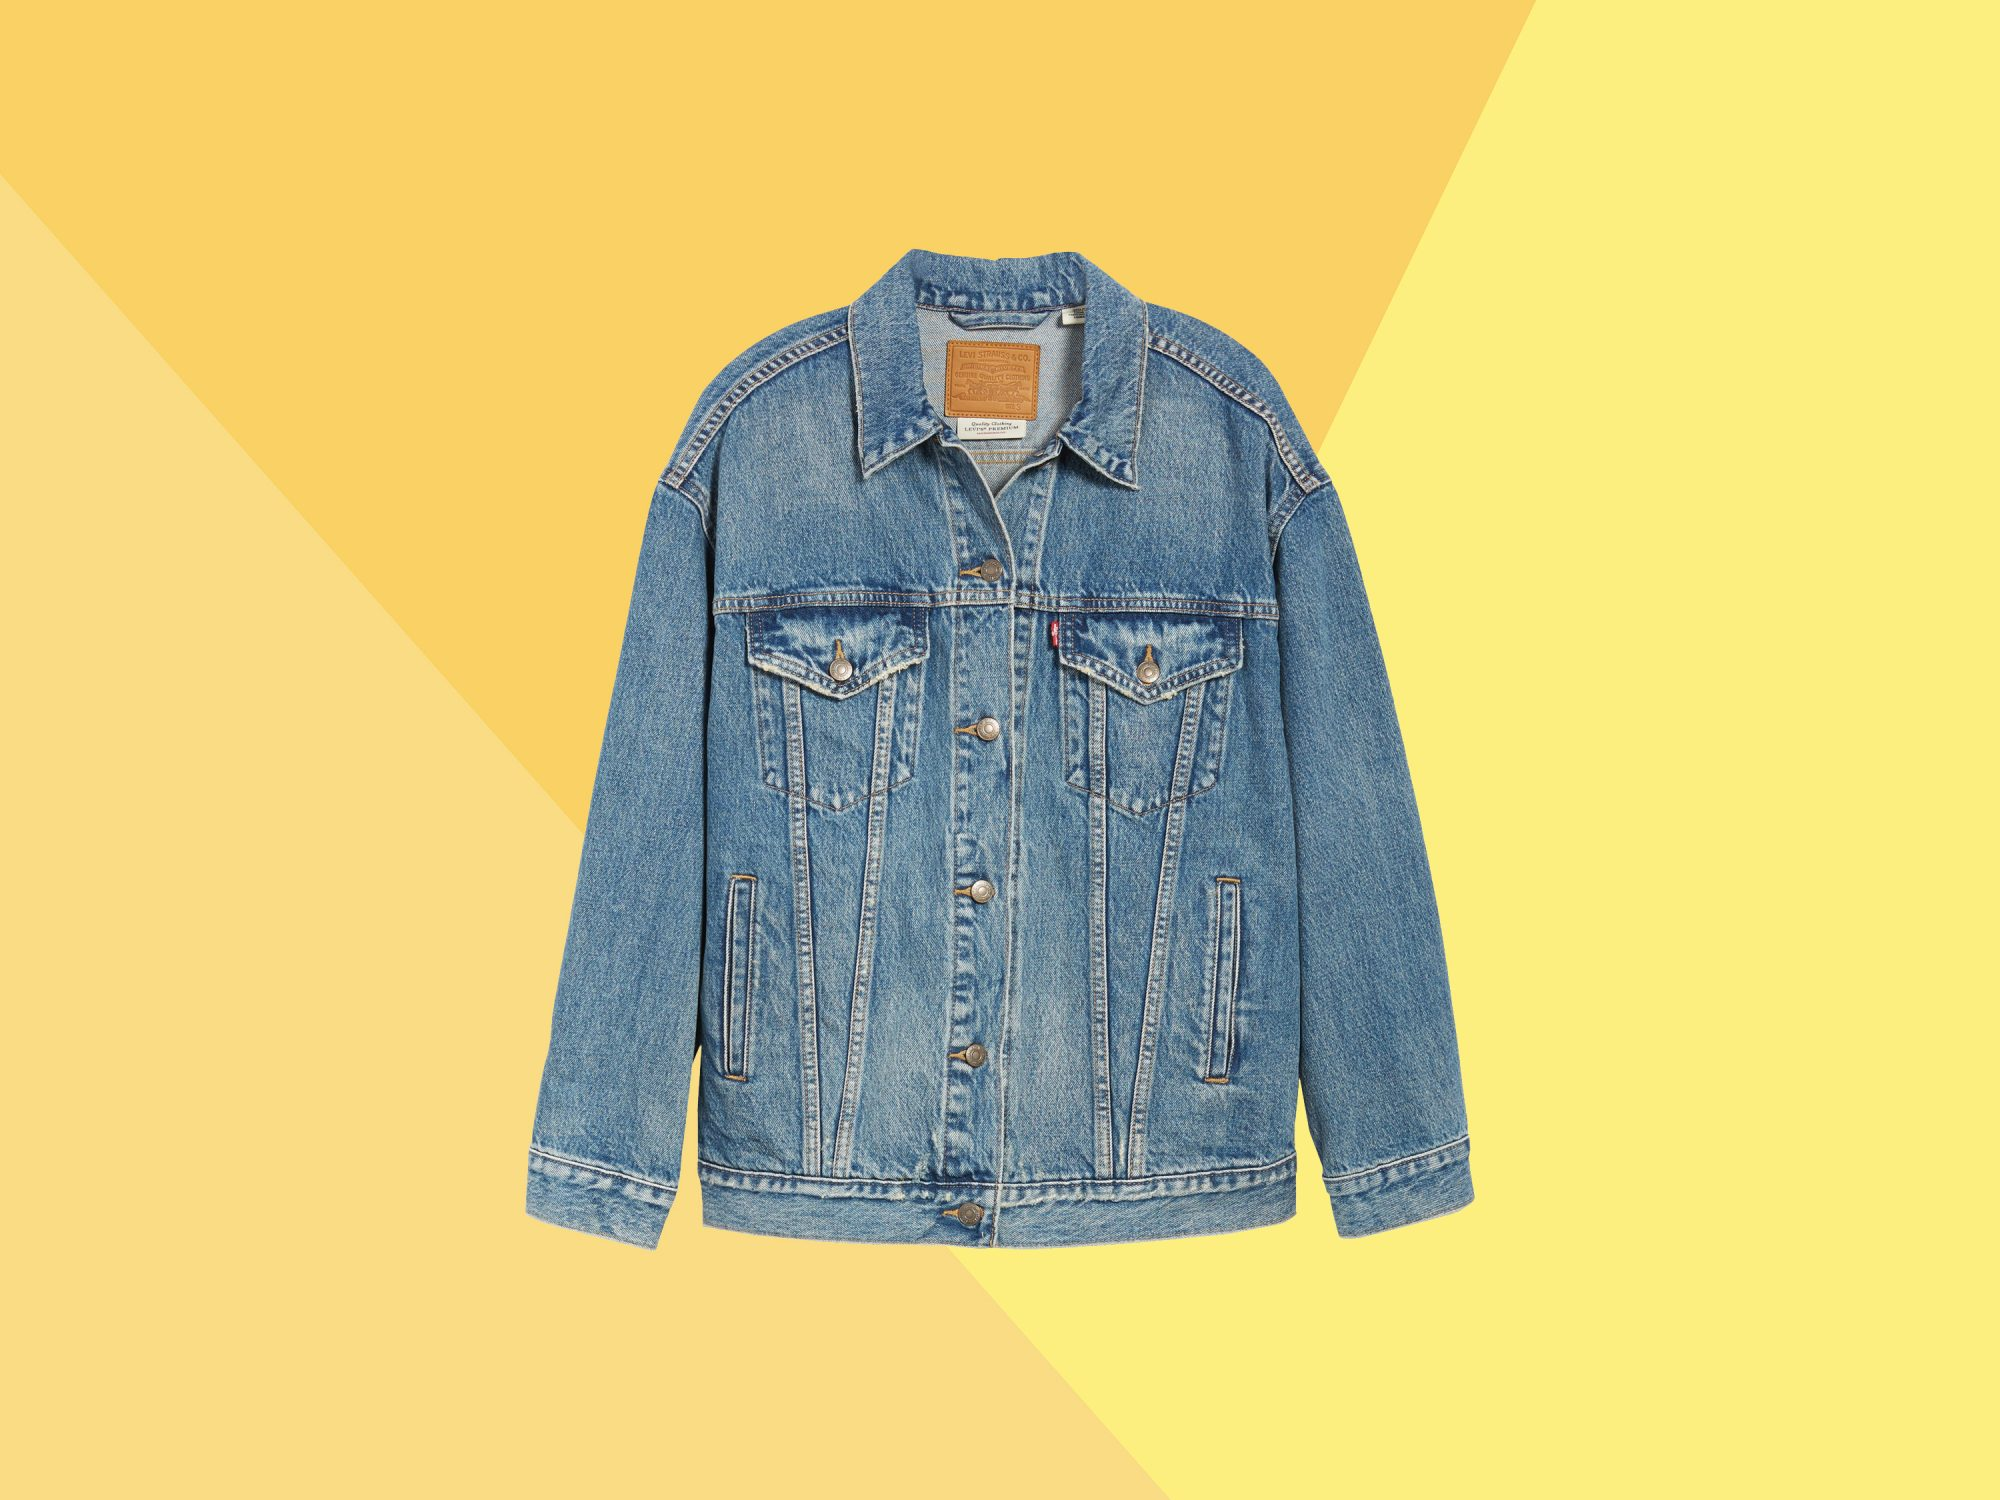 b2a631270fe696 How to Wear a Jean Jacket With Any Outfit | Real Simple